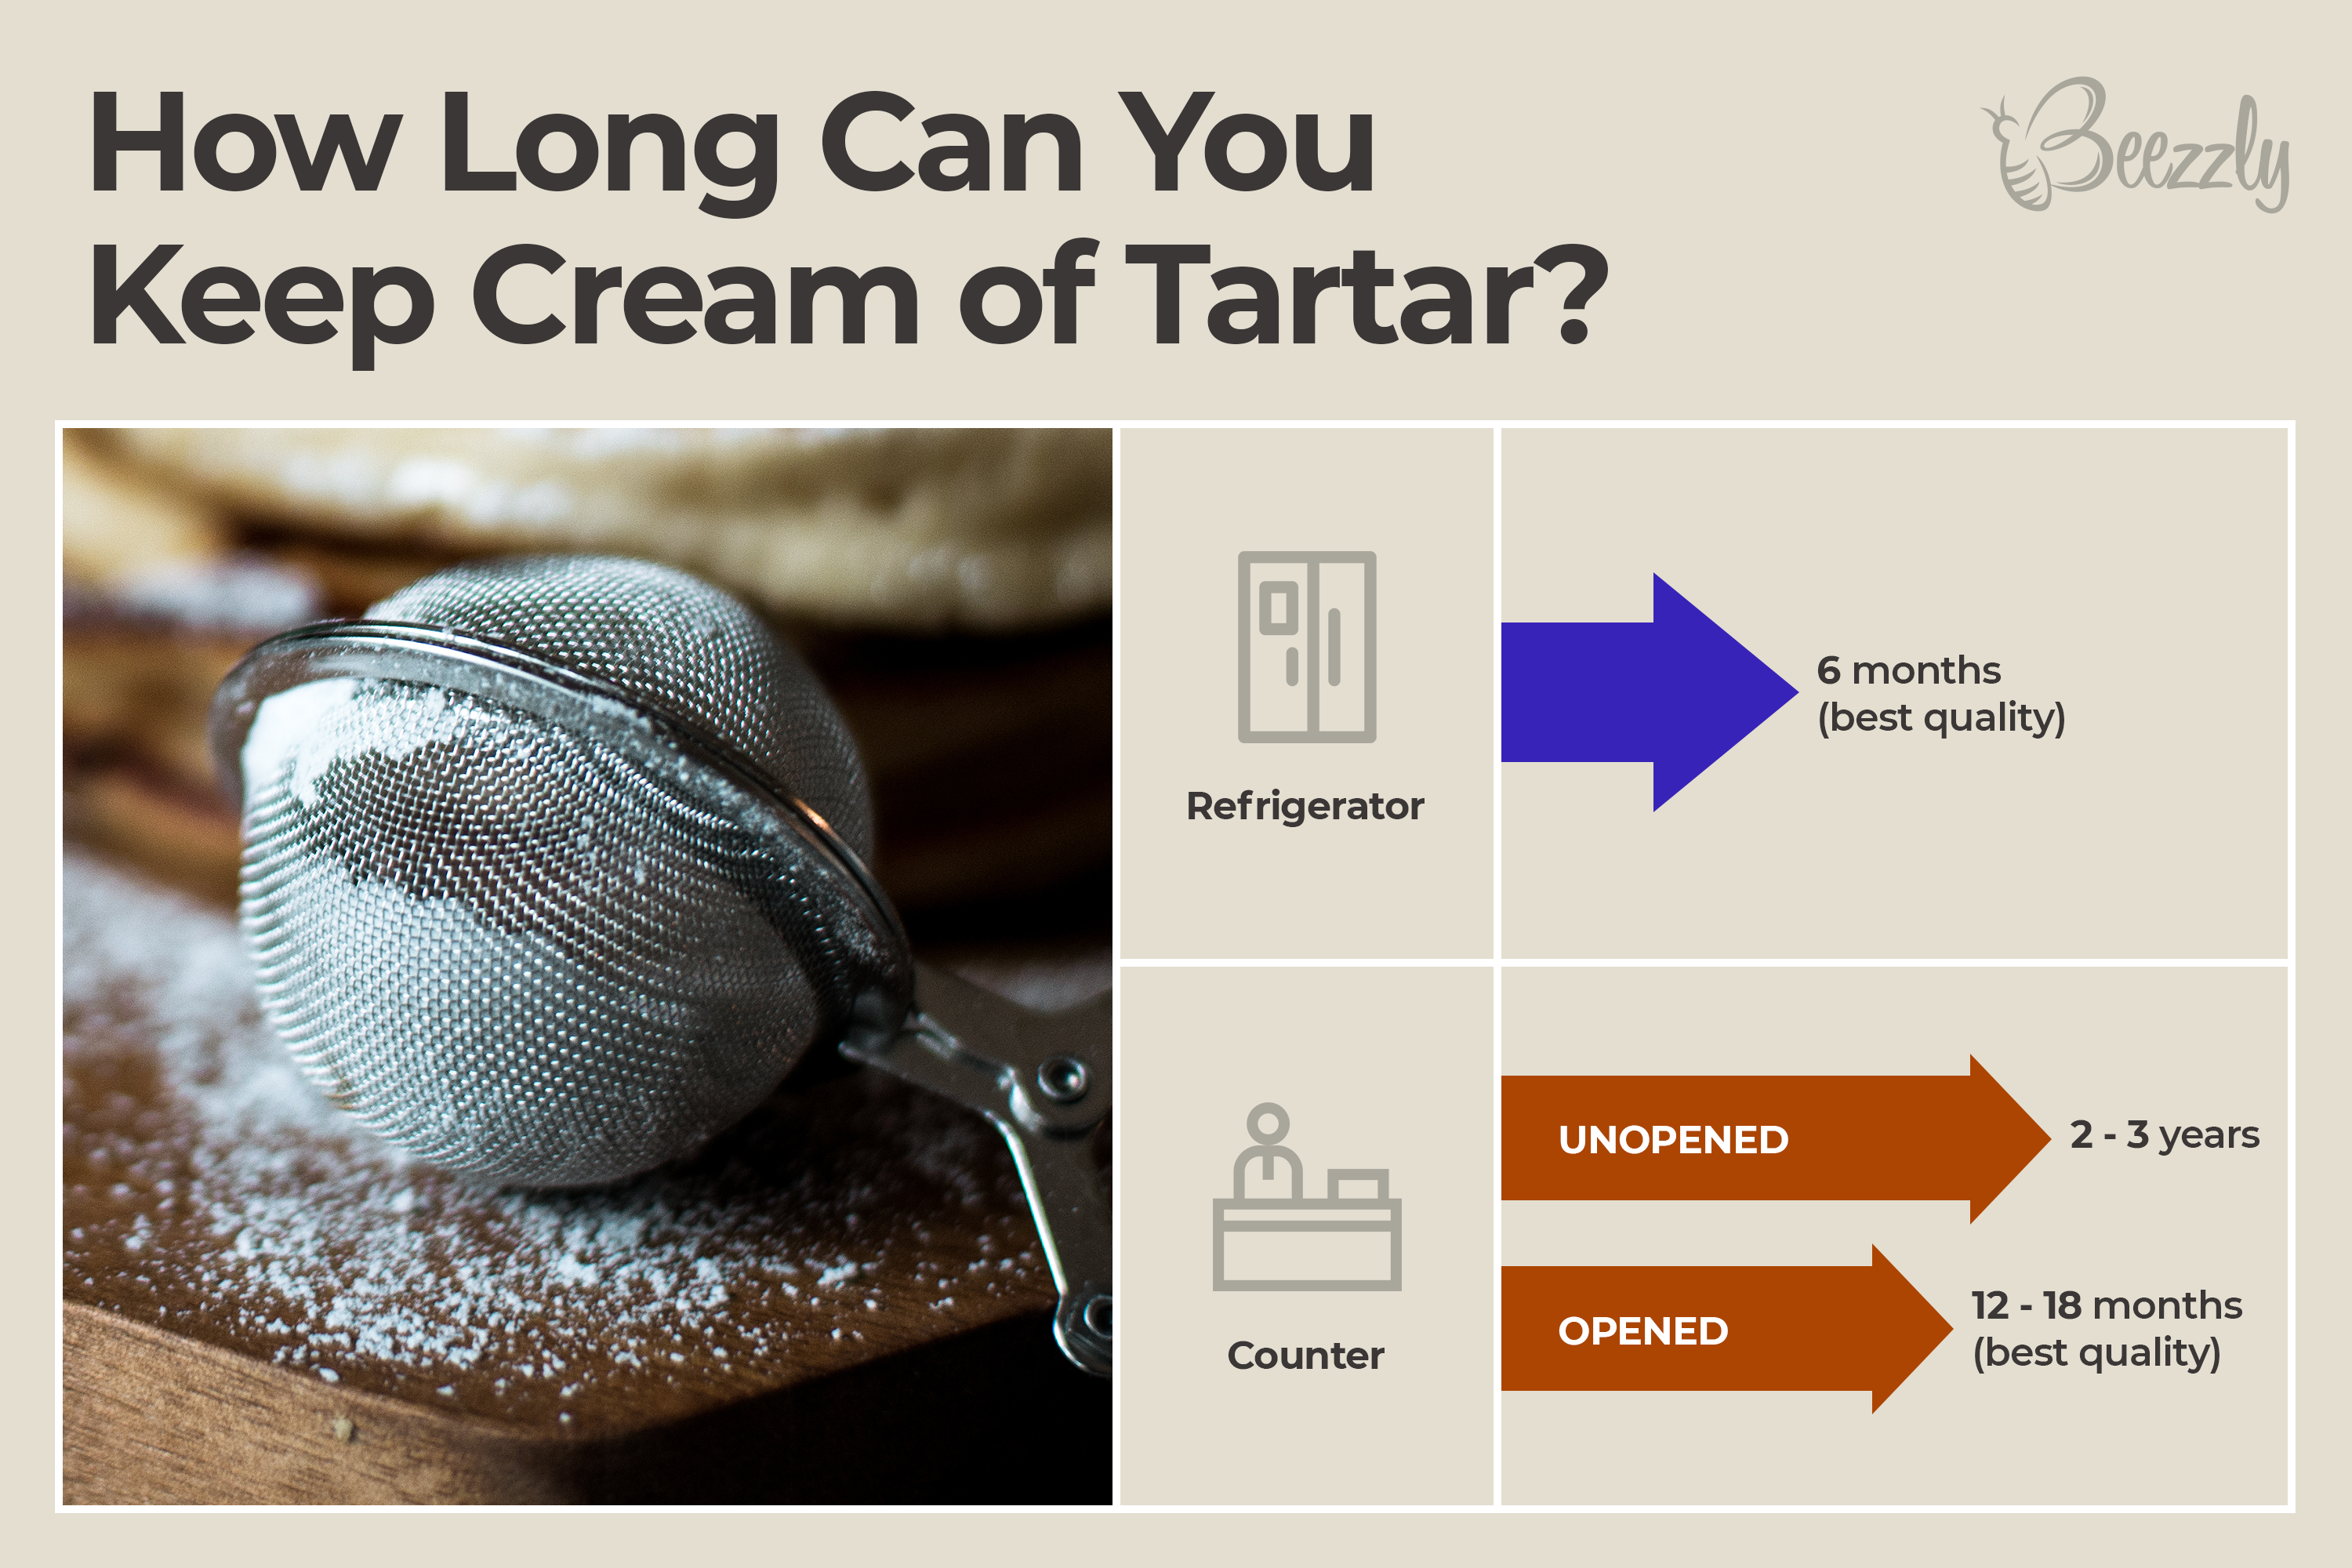 How long can you keep the cream of tartar